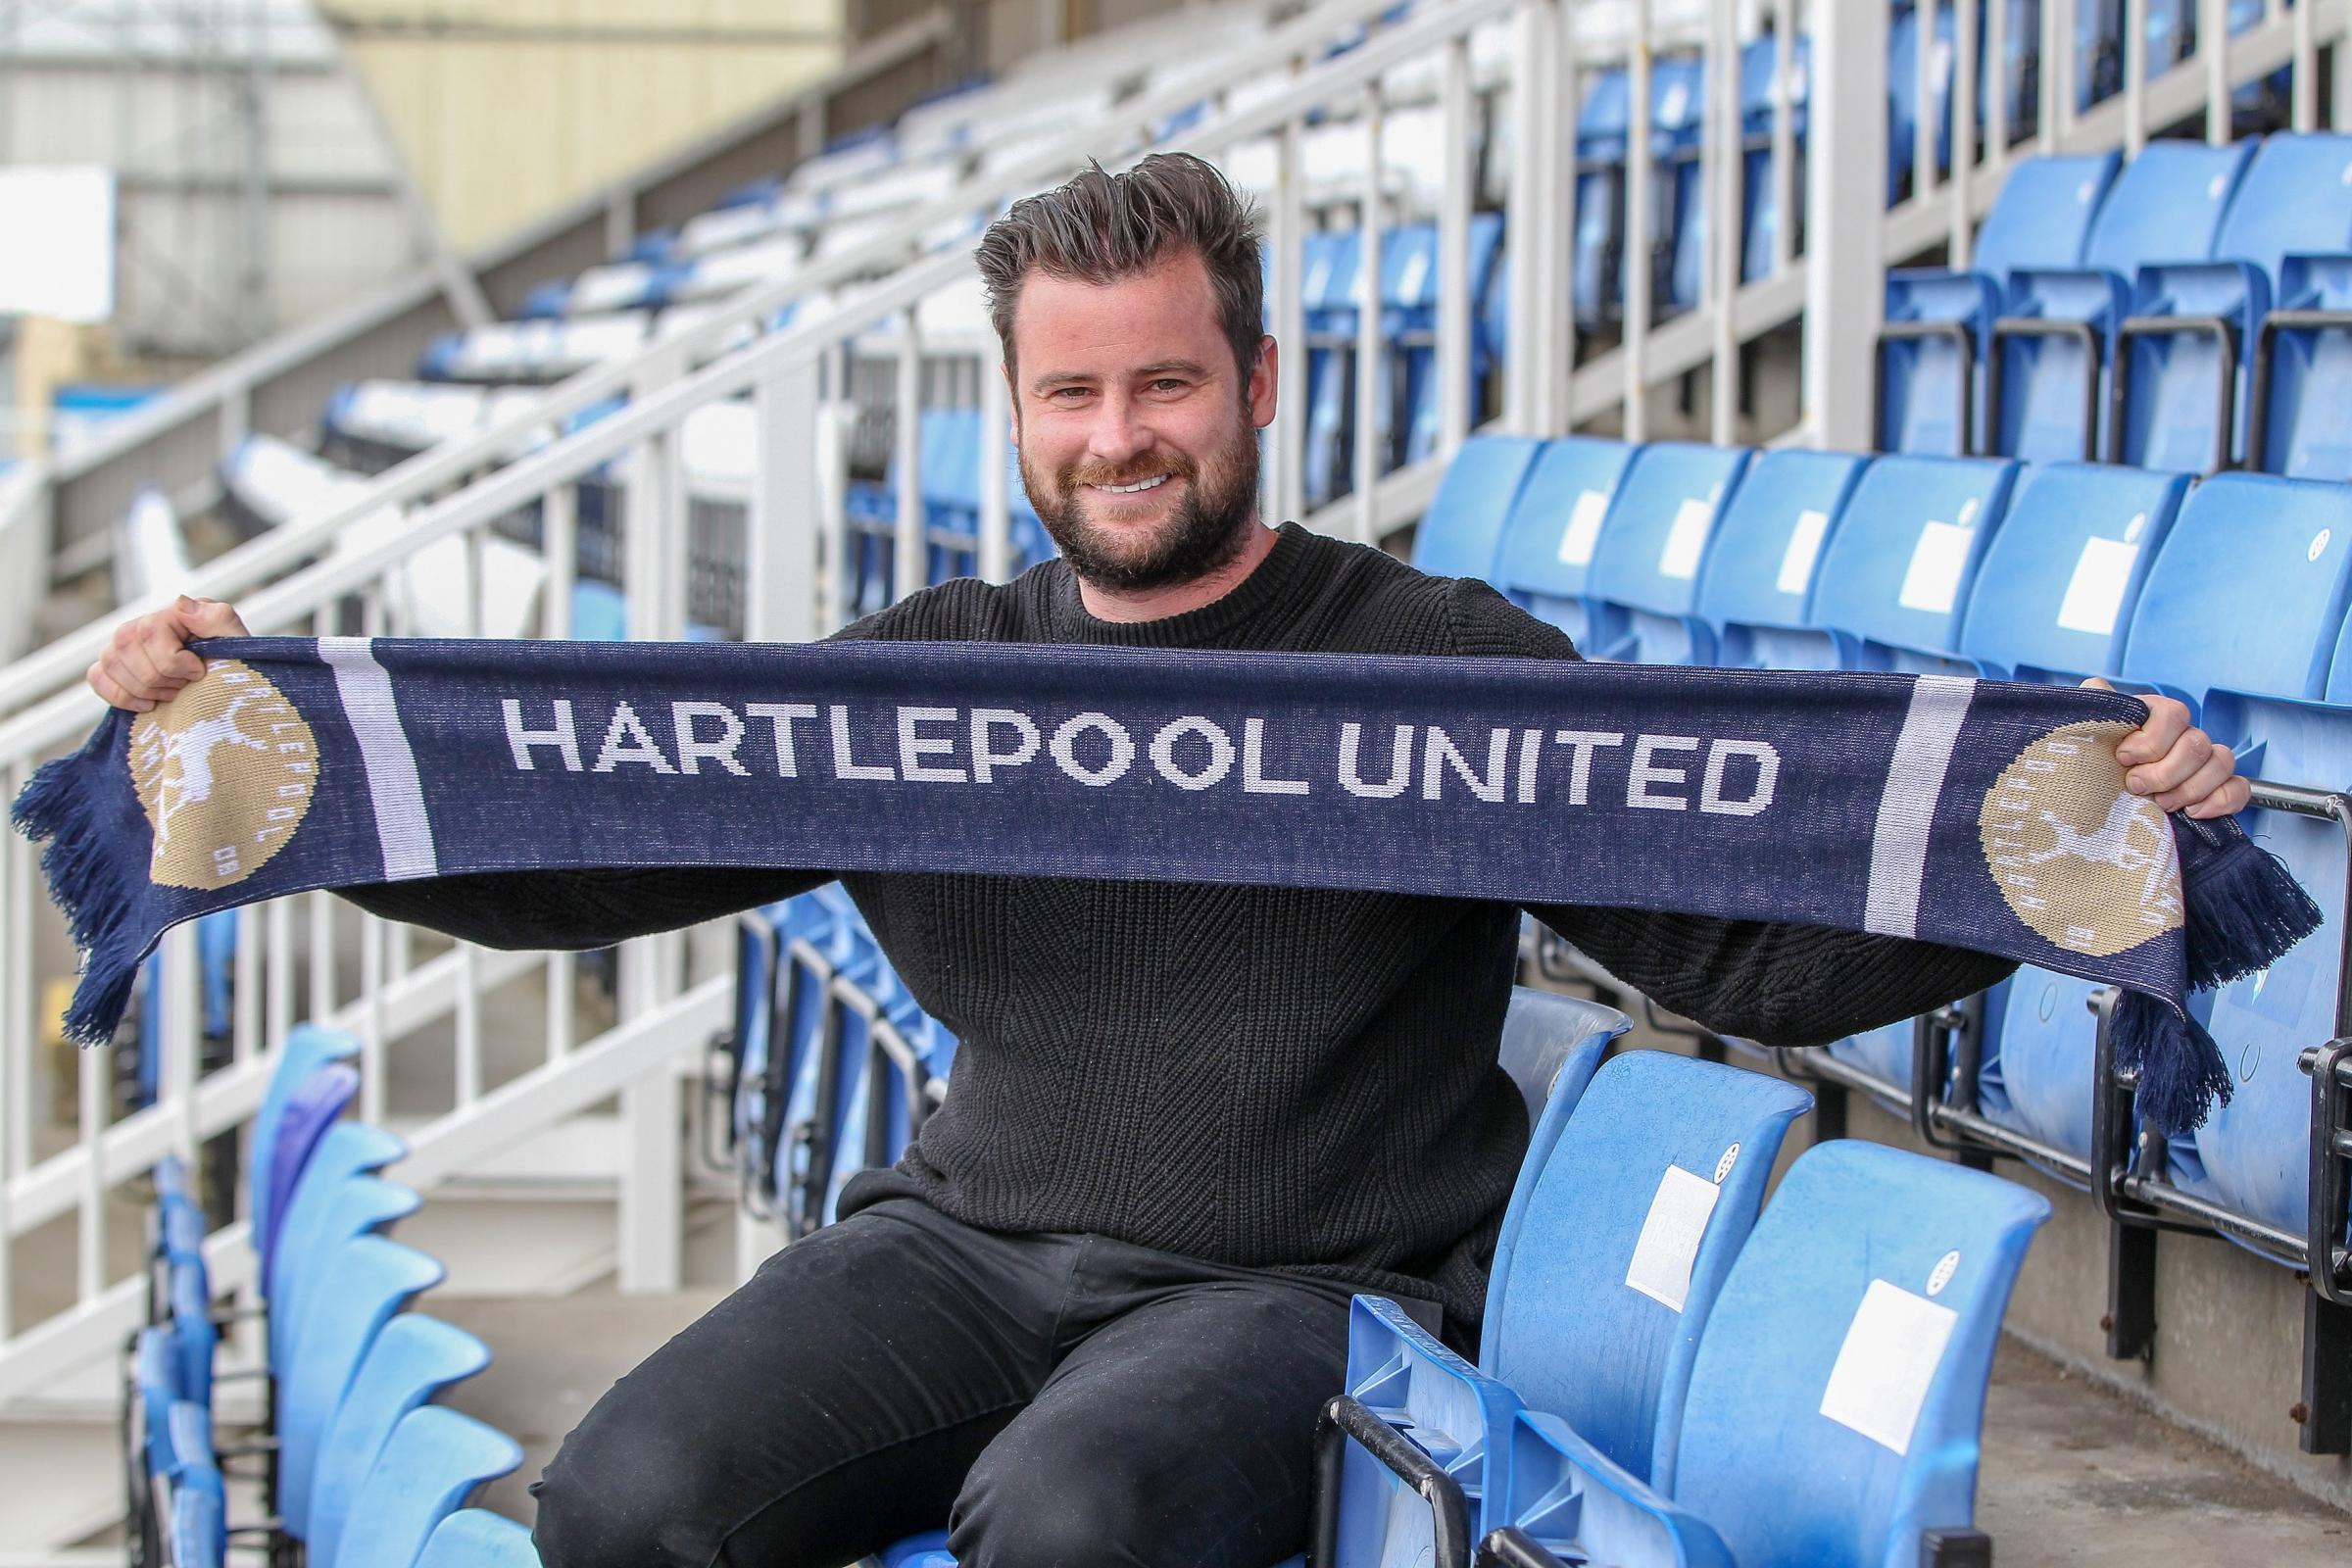 Hartlepool United boss Matthew Bates